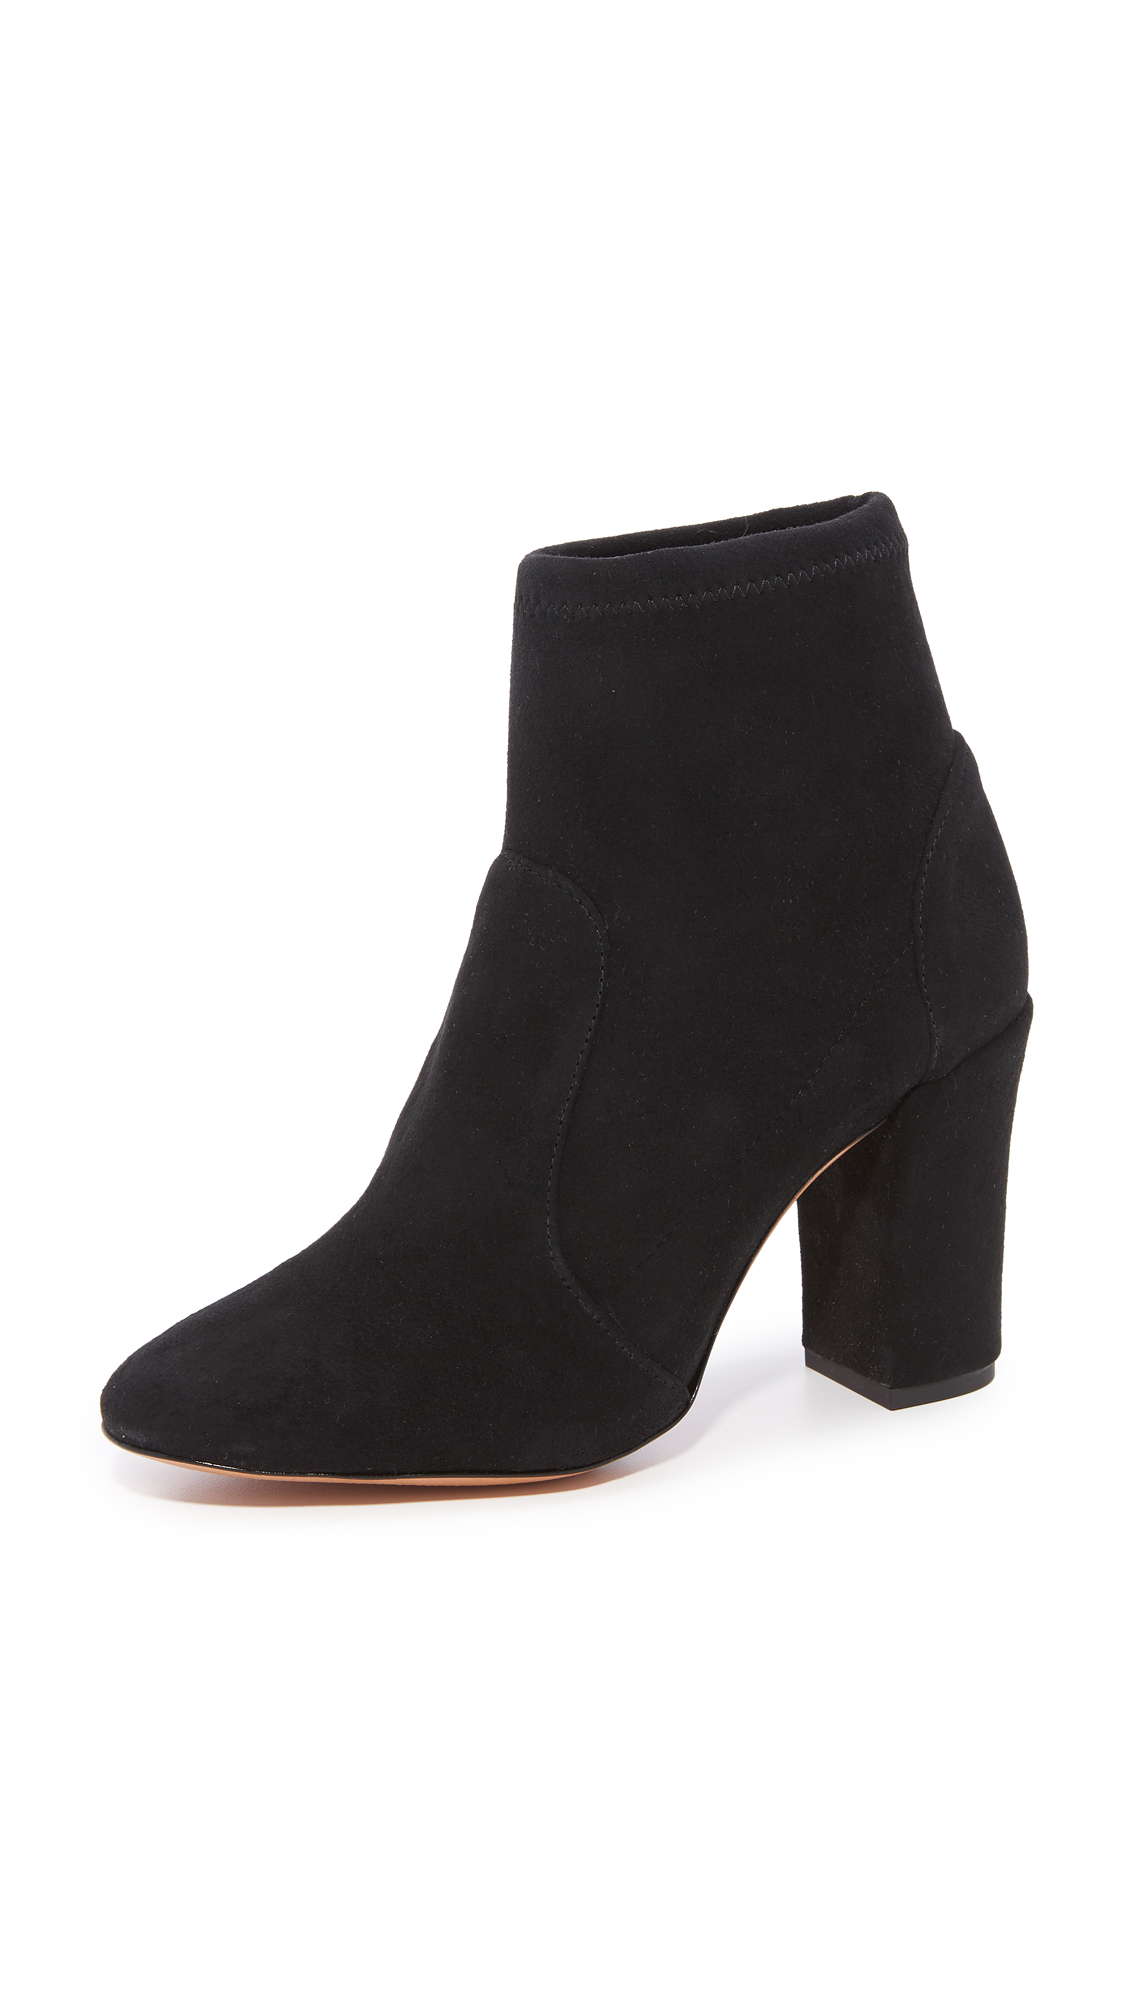 Schutz Ditte Stretch Ankle Booties - Black